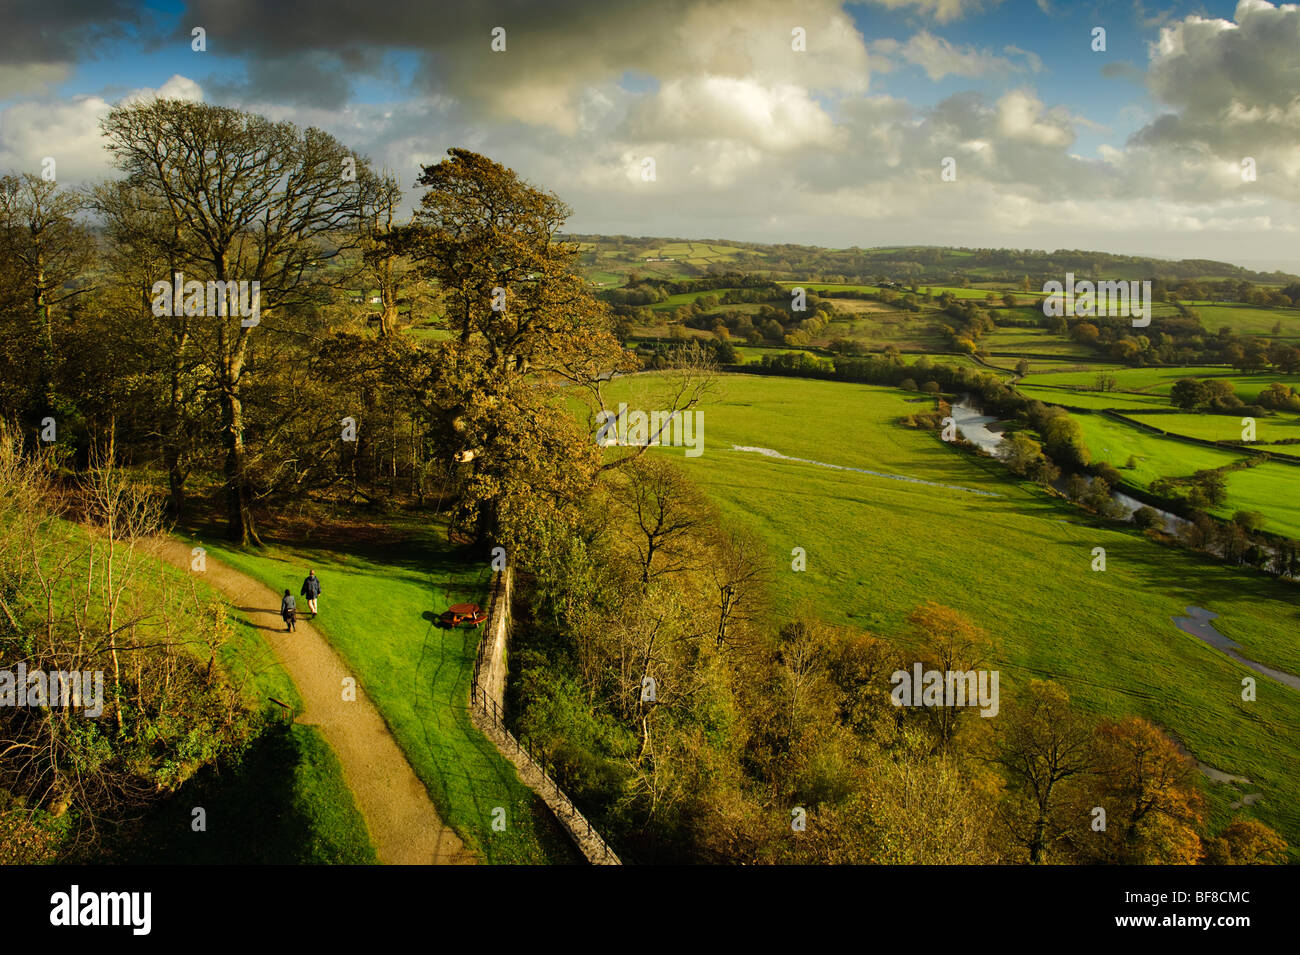 The Tywi Valley and Dinefwr Park from the castle, National Trust, Llandeilo, Carmarthenshire south west wales UK - Stock Image